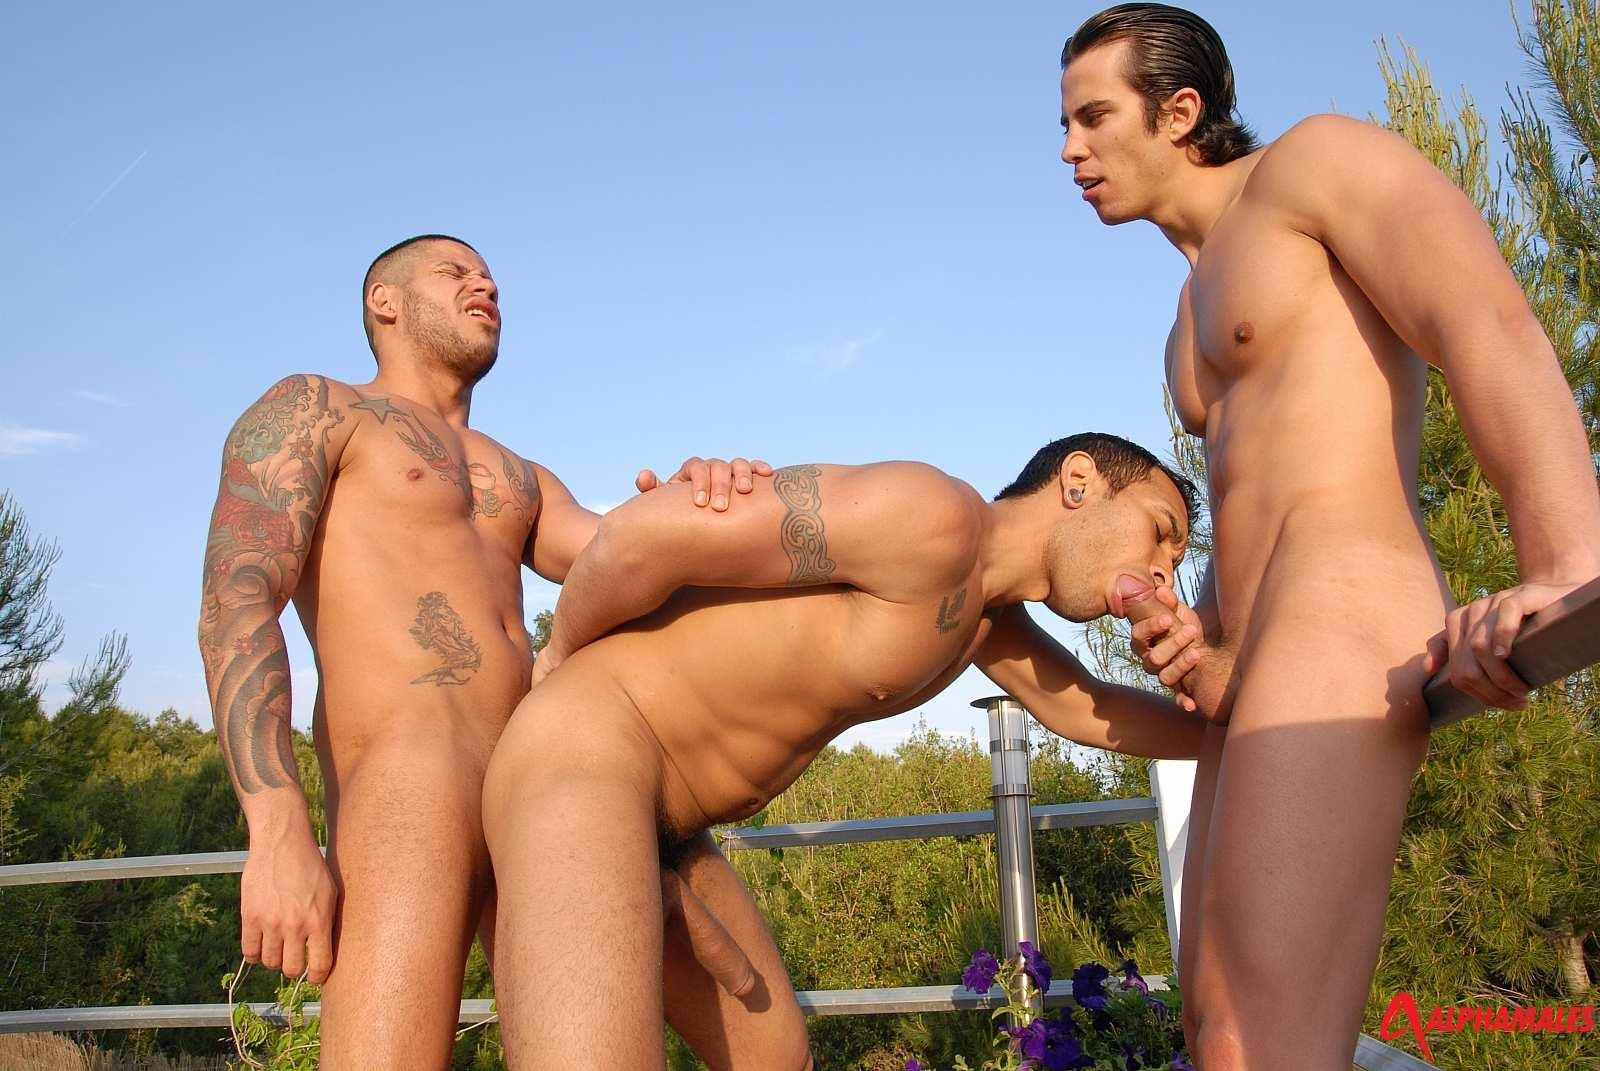 Alpha-Males-Lucio-Saints-and-Mailkel-Cash-and-Fabio-Costa-Lucio-Saints-Getting-Bottomed-Amateur-Gay-Porn-09 RARE: Lucio Saints Bottoms And Receives A Cum Facial